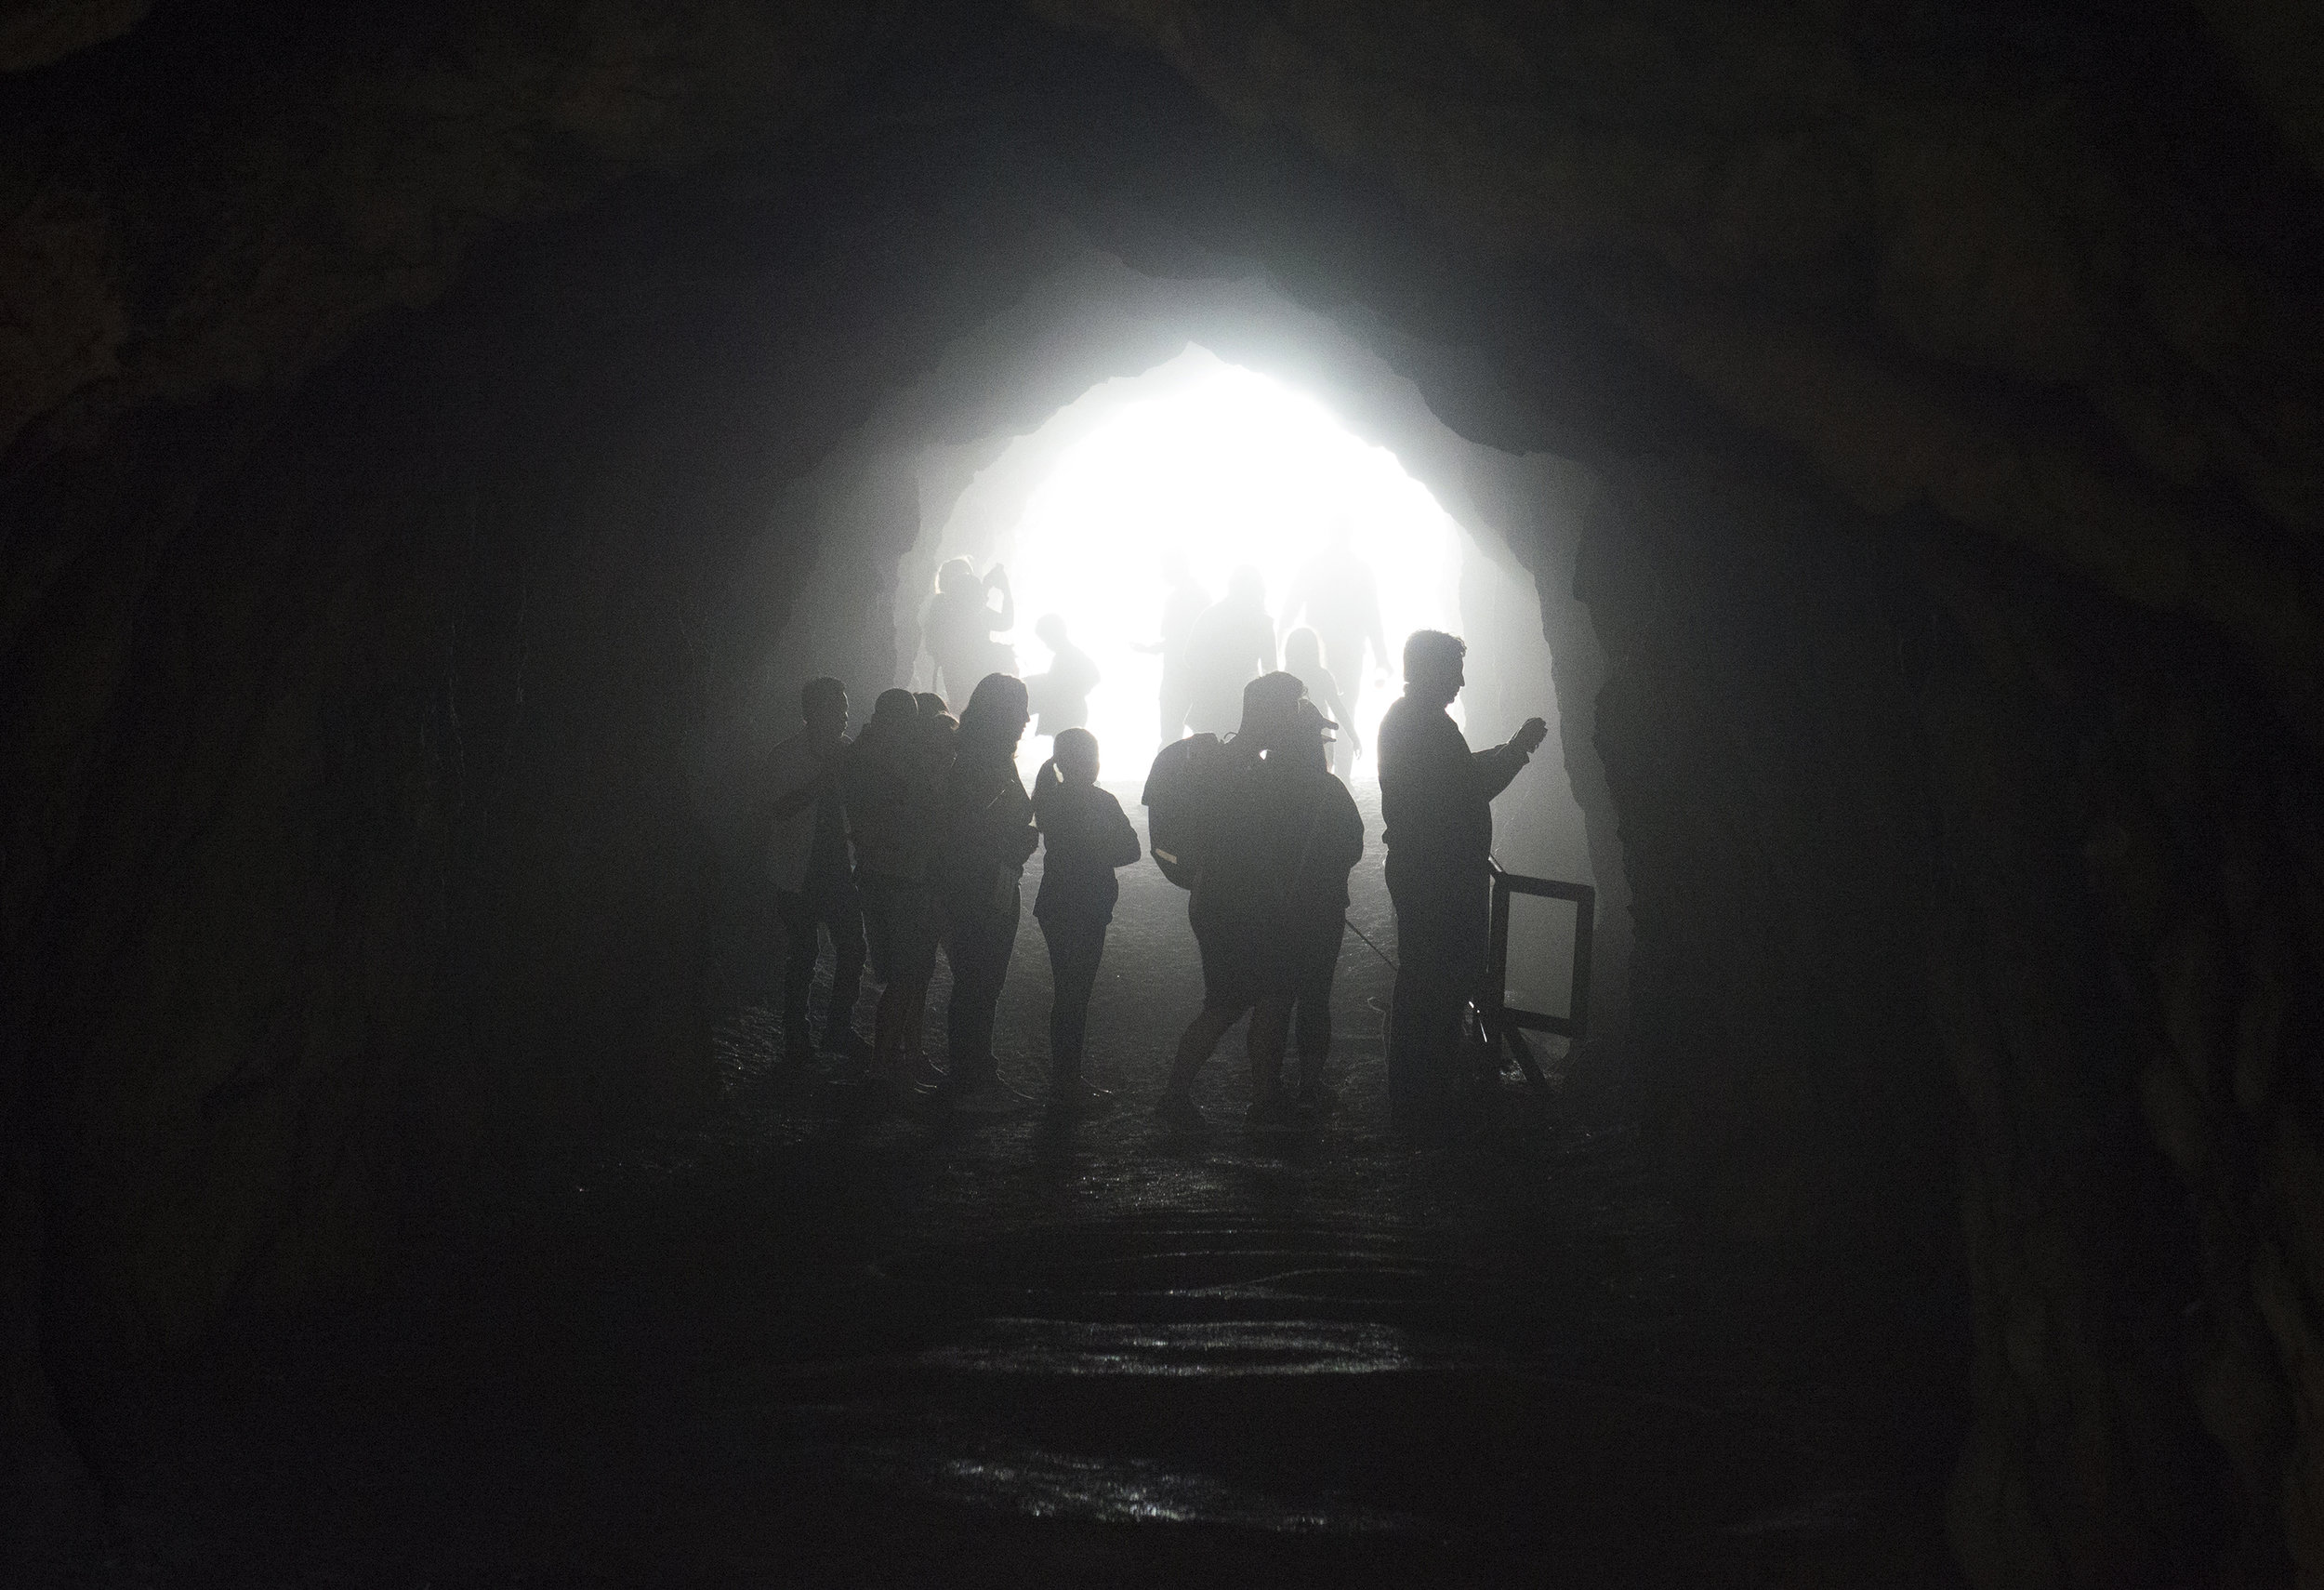 Visitors explore the misty Sutro Baths cave at Land's End in San Francisco, Ca. on Friday, November 24, 2017. Photo by David Andrews.